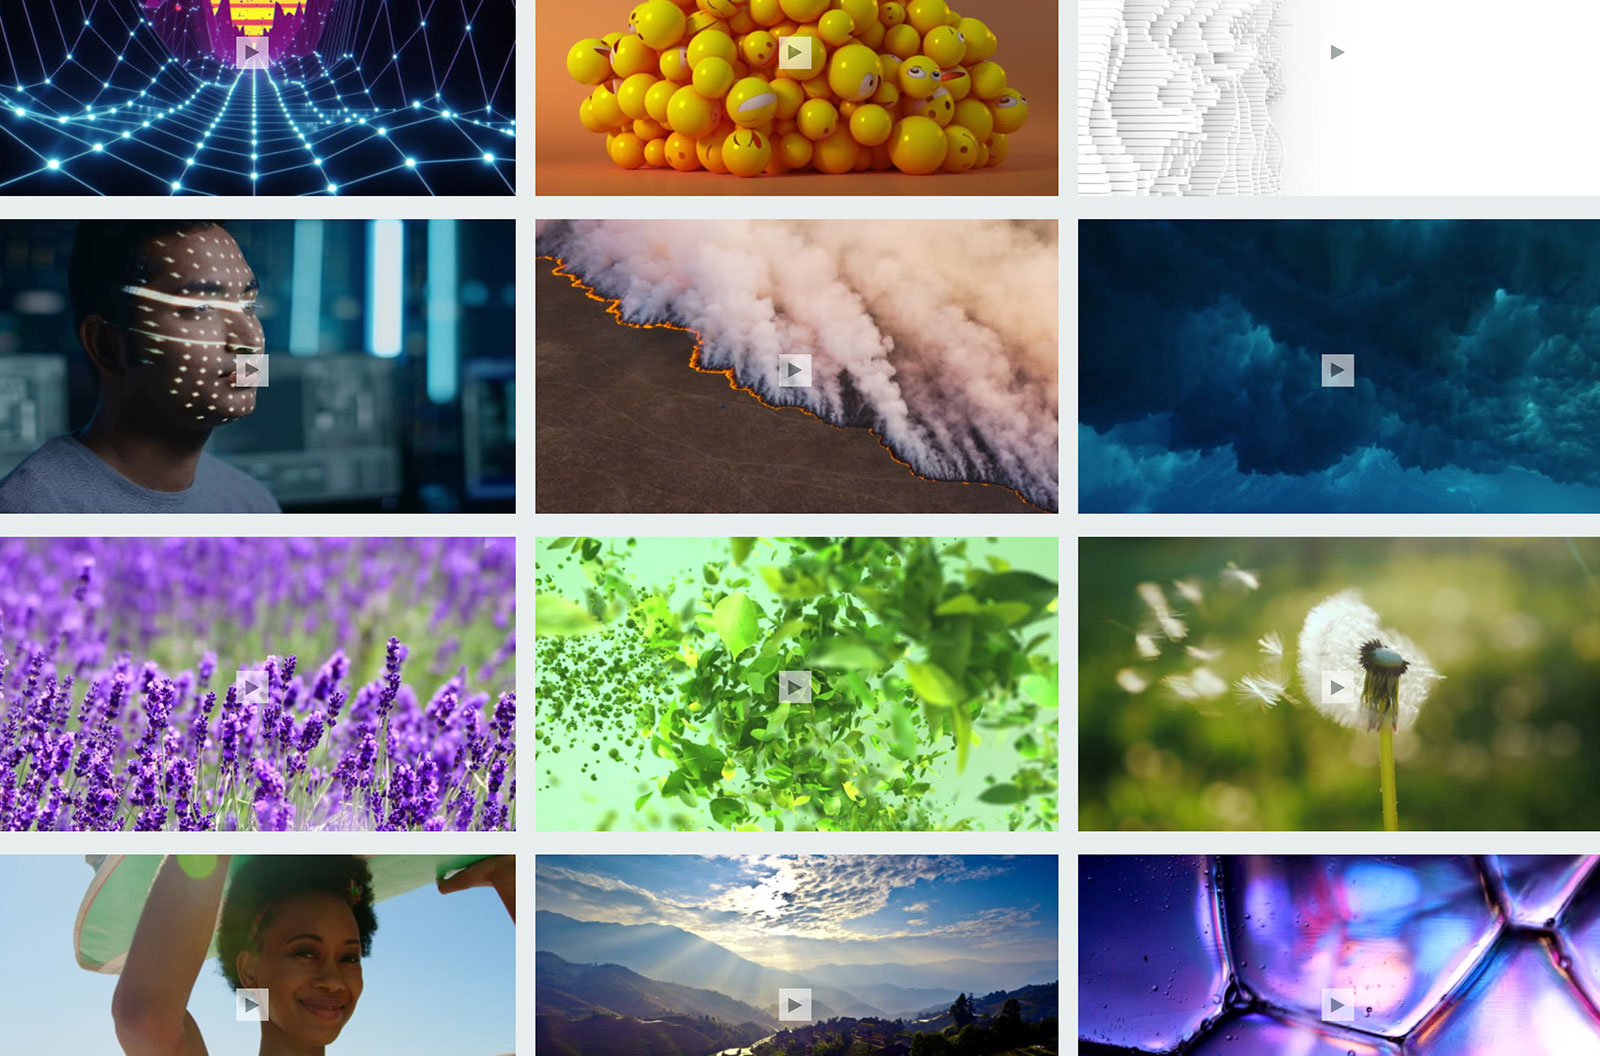 Mosaic of different colorful imagery, including lavender, virtual reality, and beautiful vistas